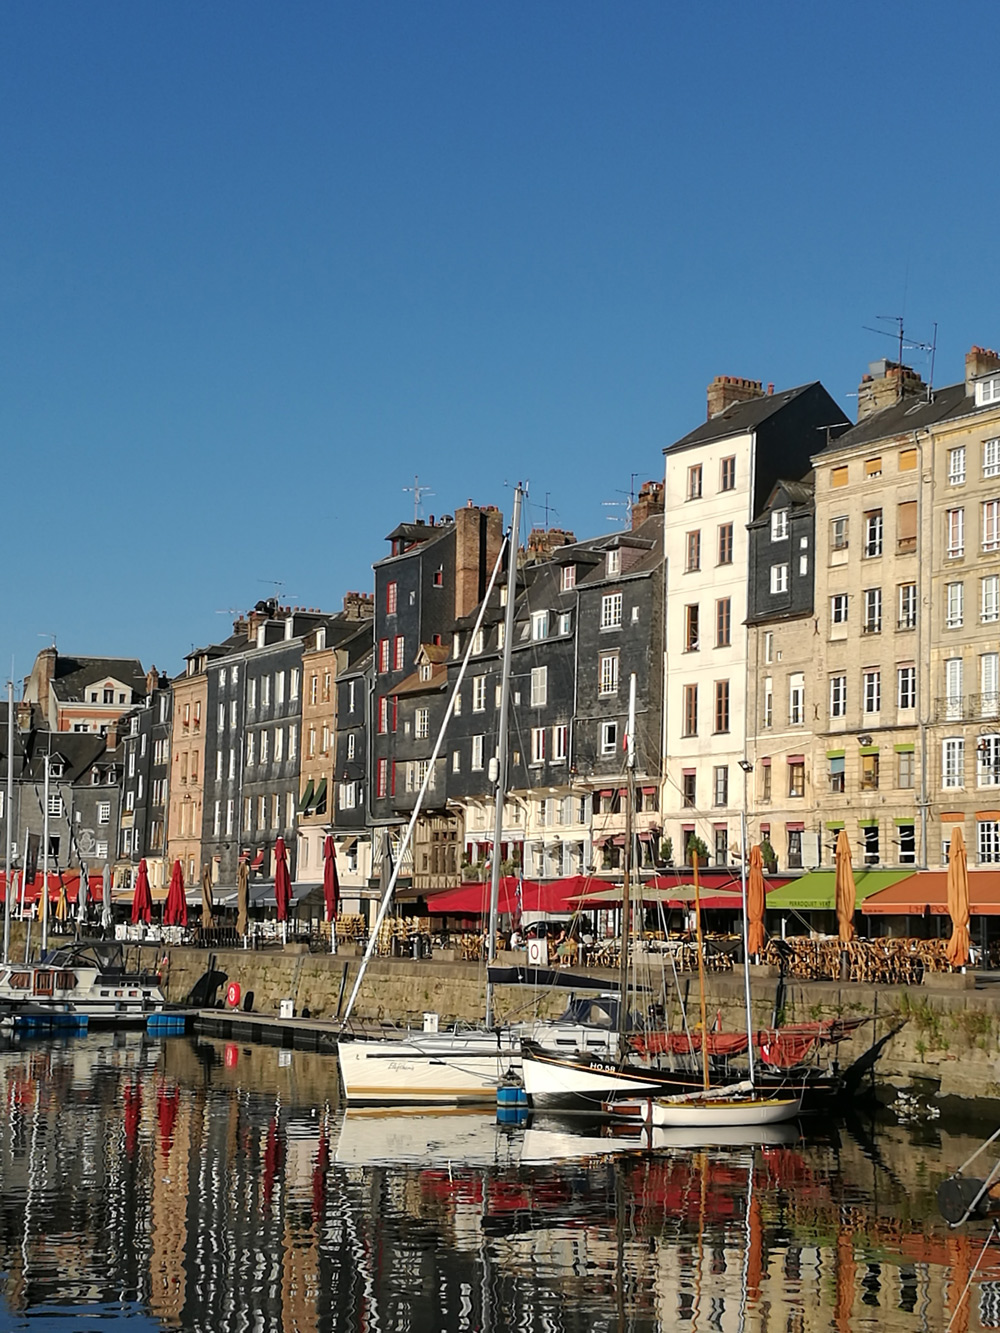 View of Harbour in Normandy